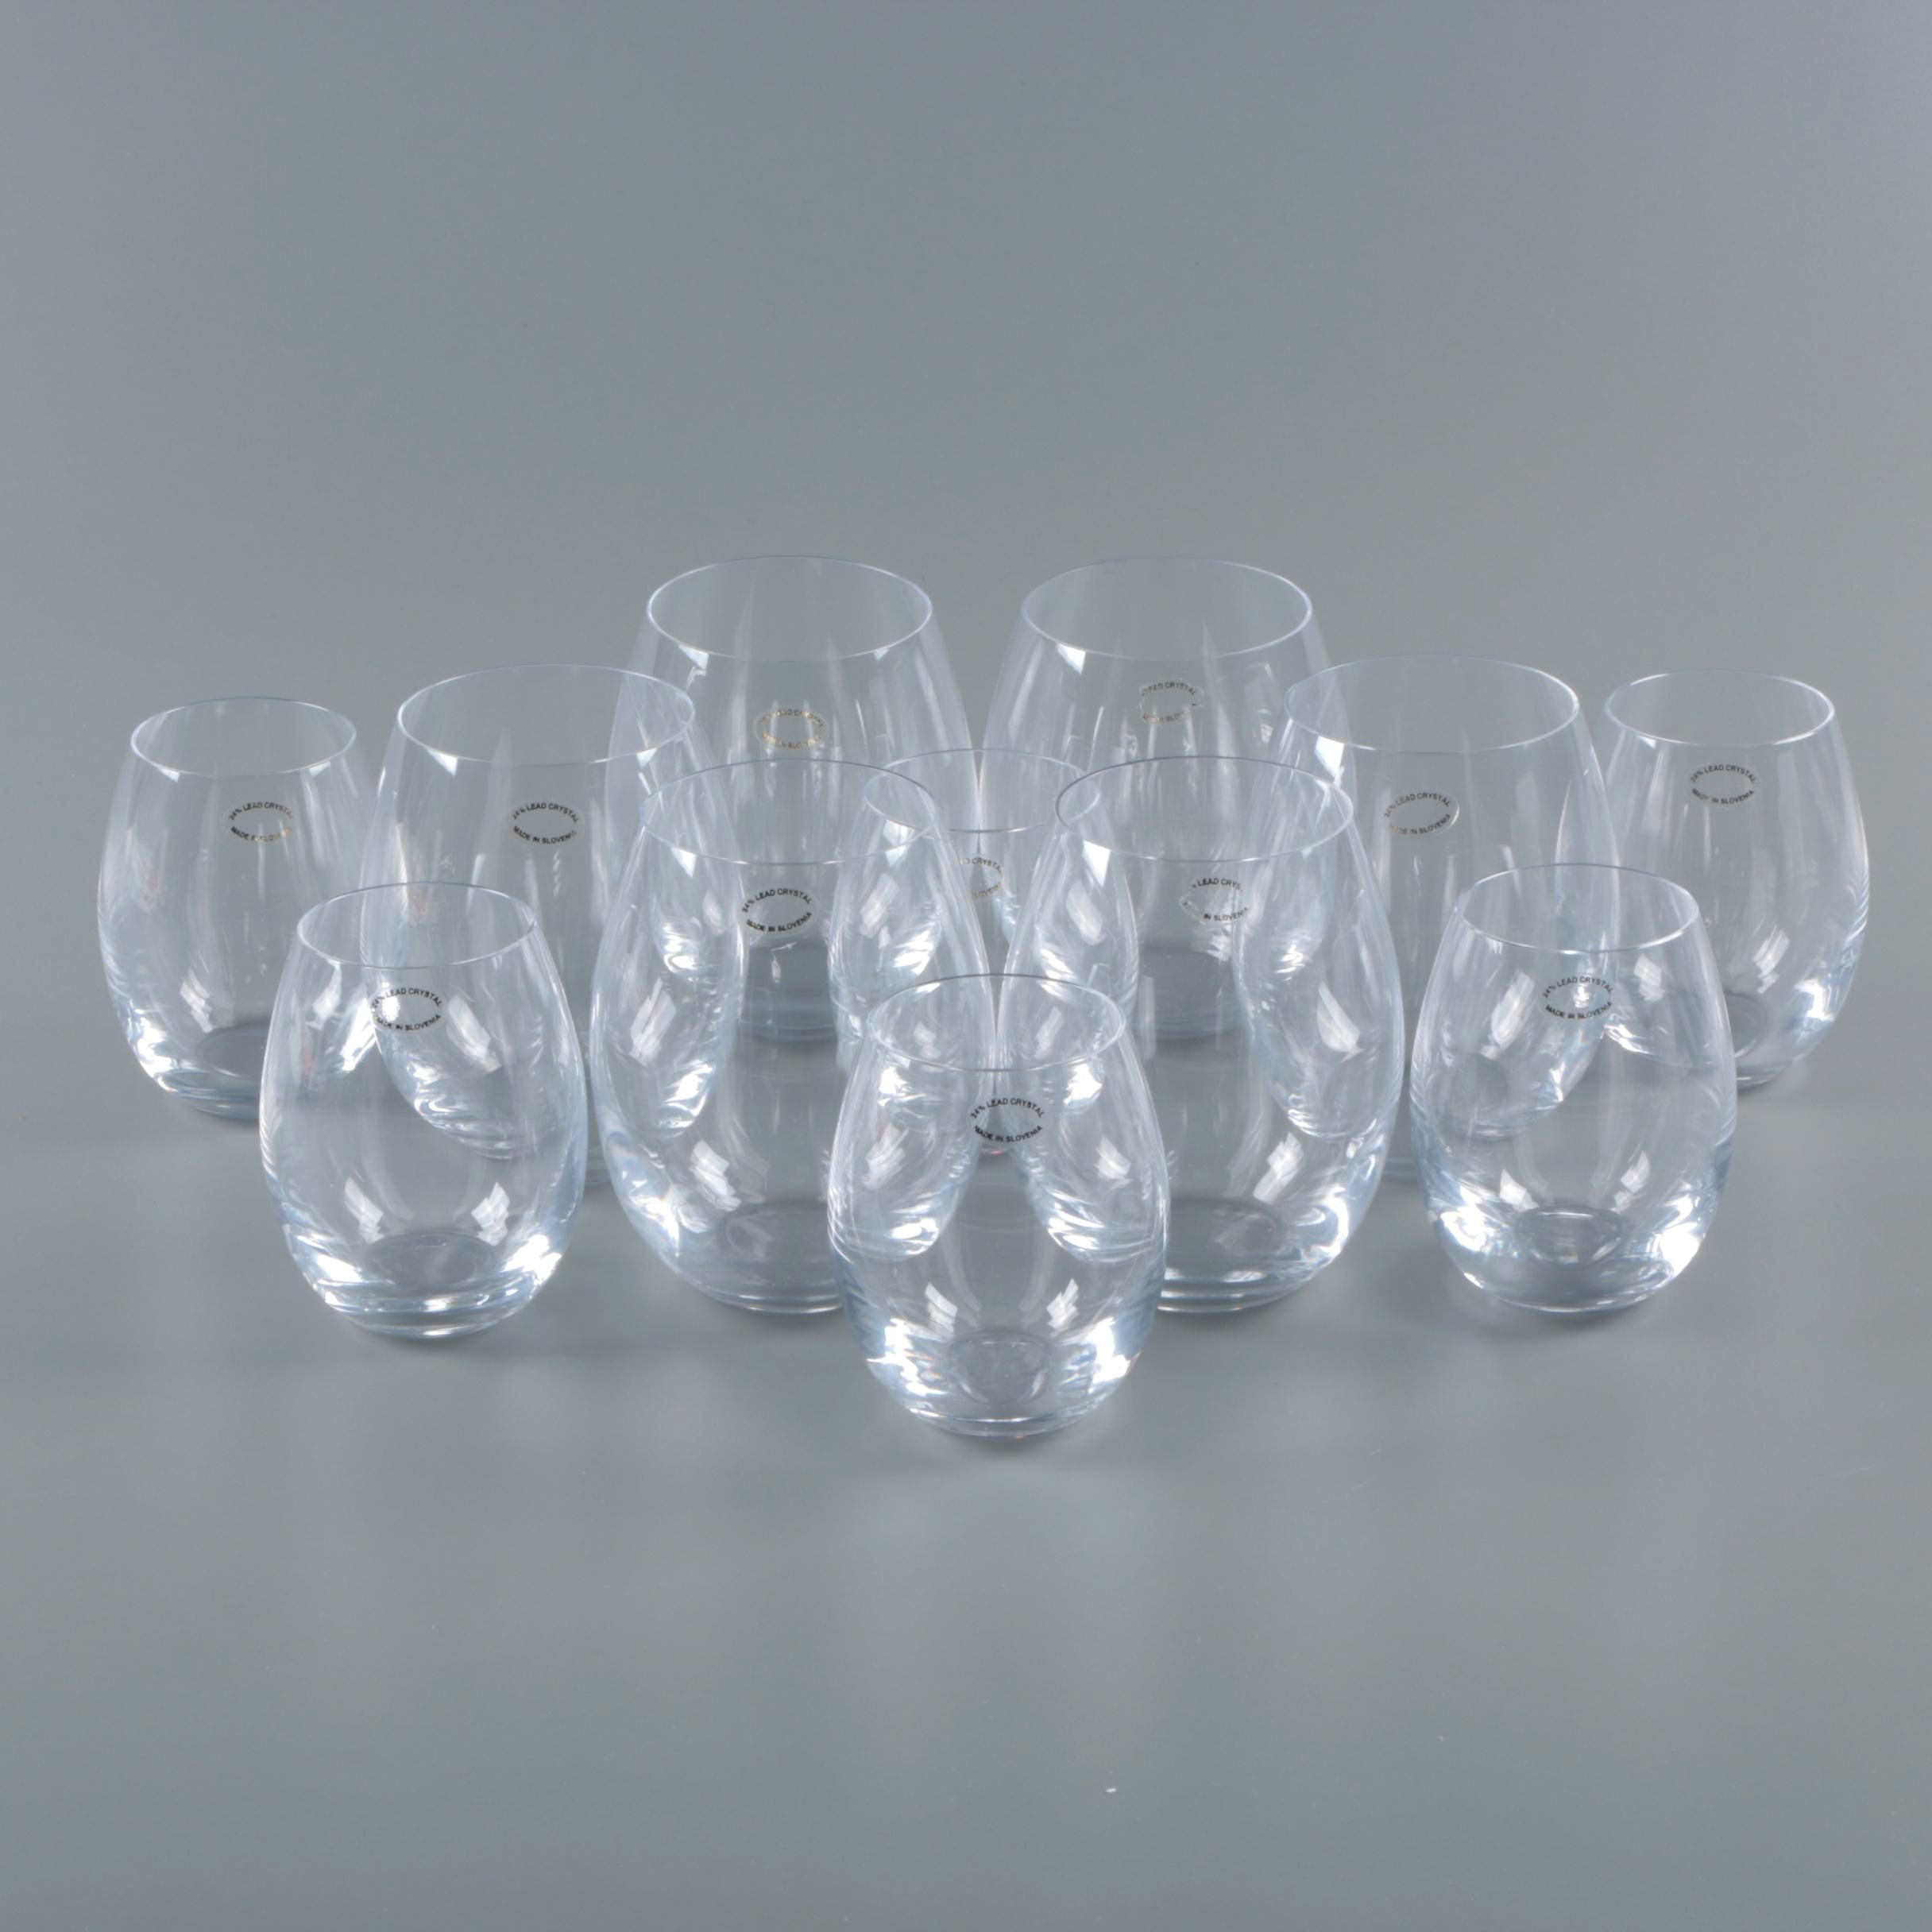 Slovenian Stemless Crystal Wine Glass Sets